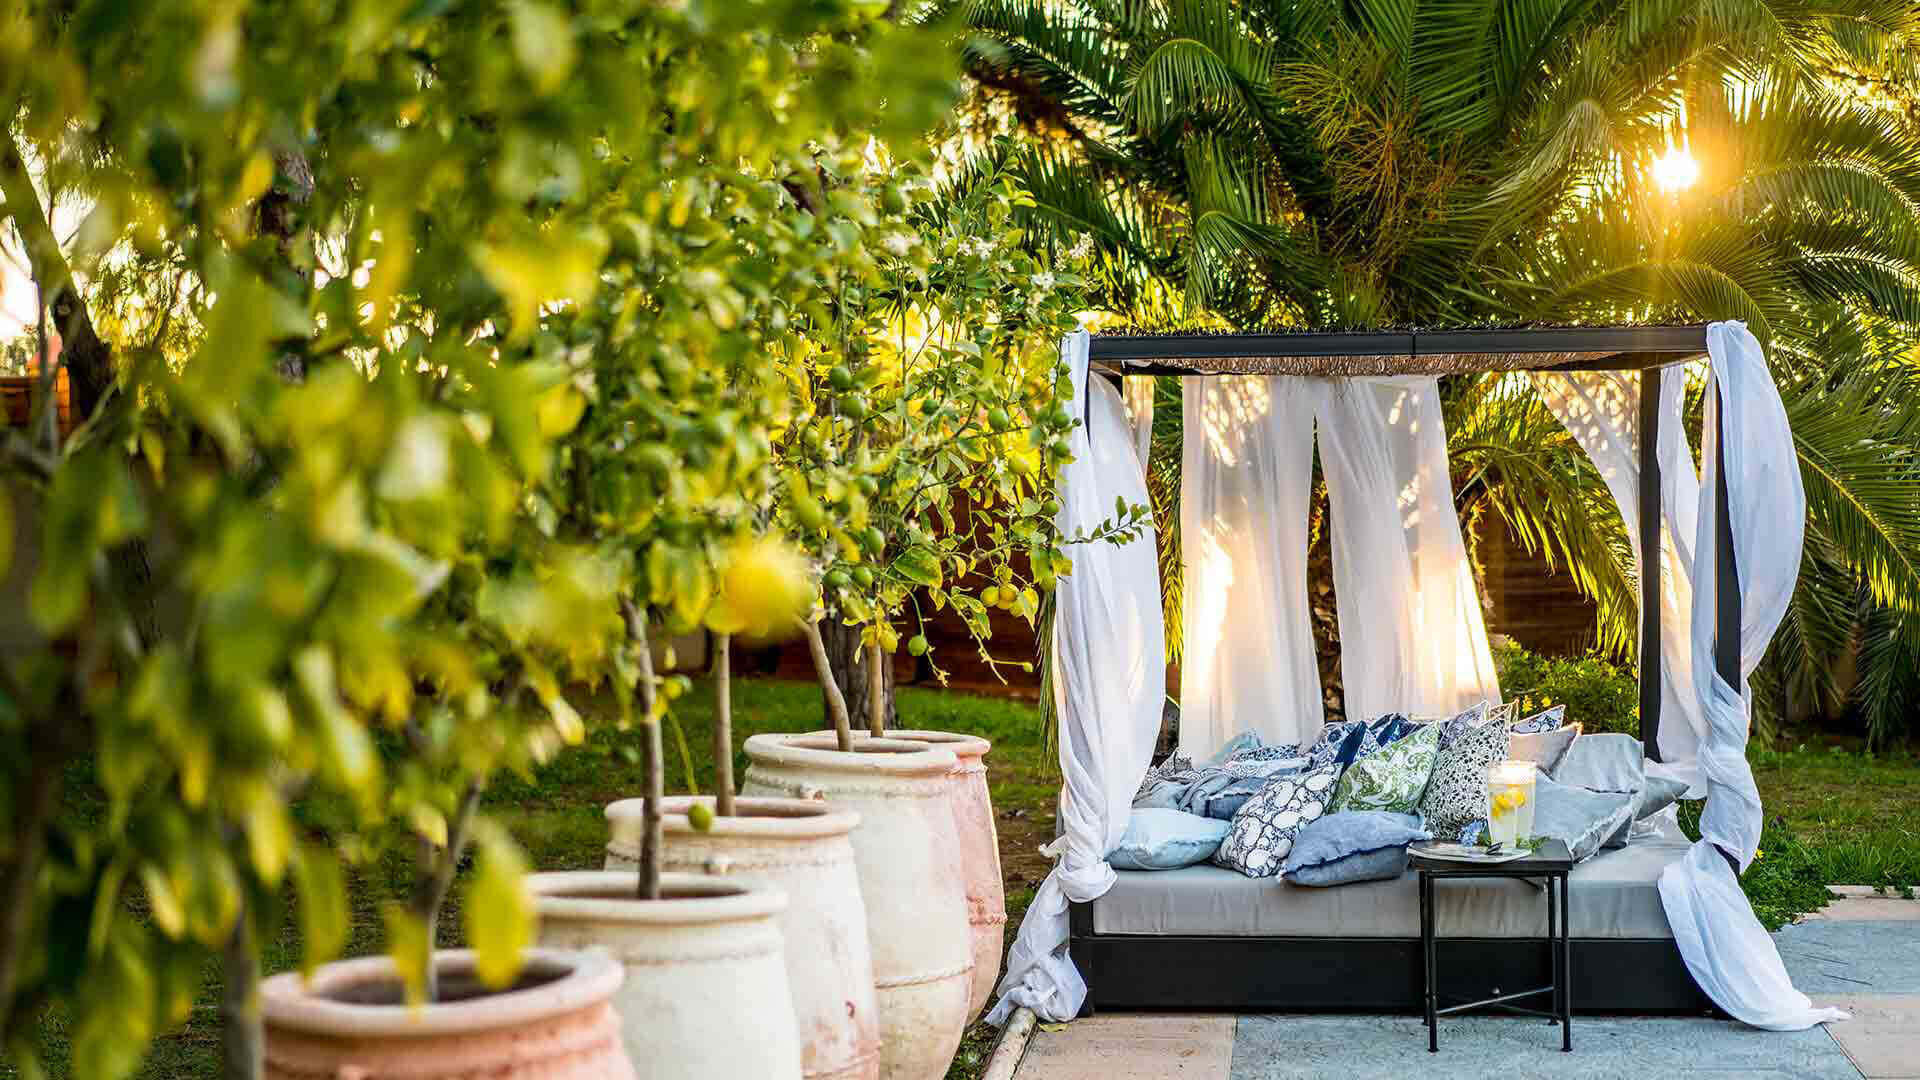 Large property outside Barcelona daybed in garden with pillows